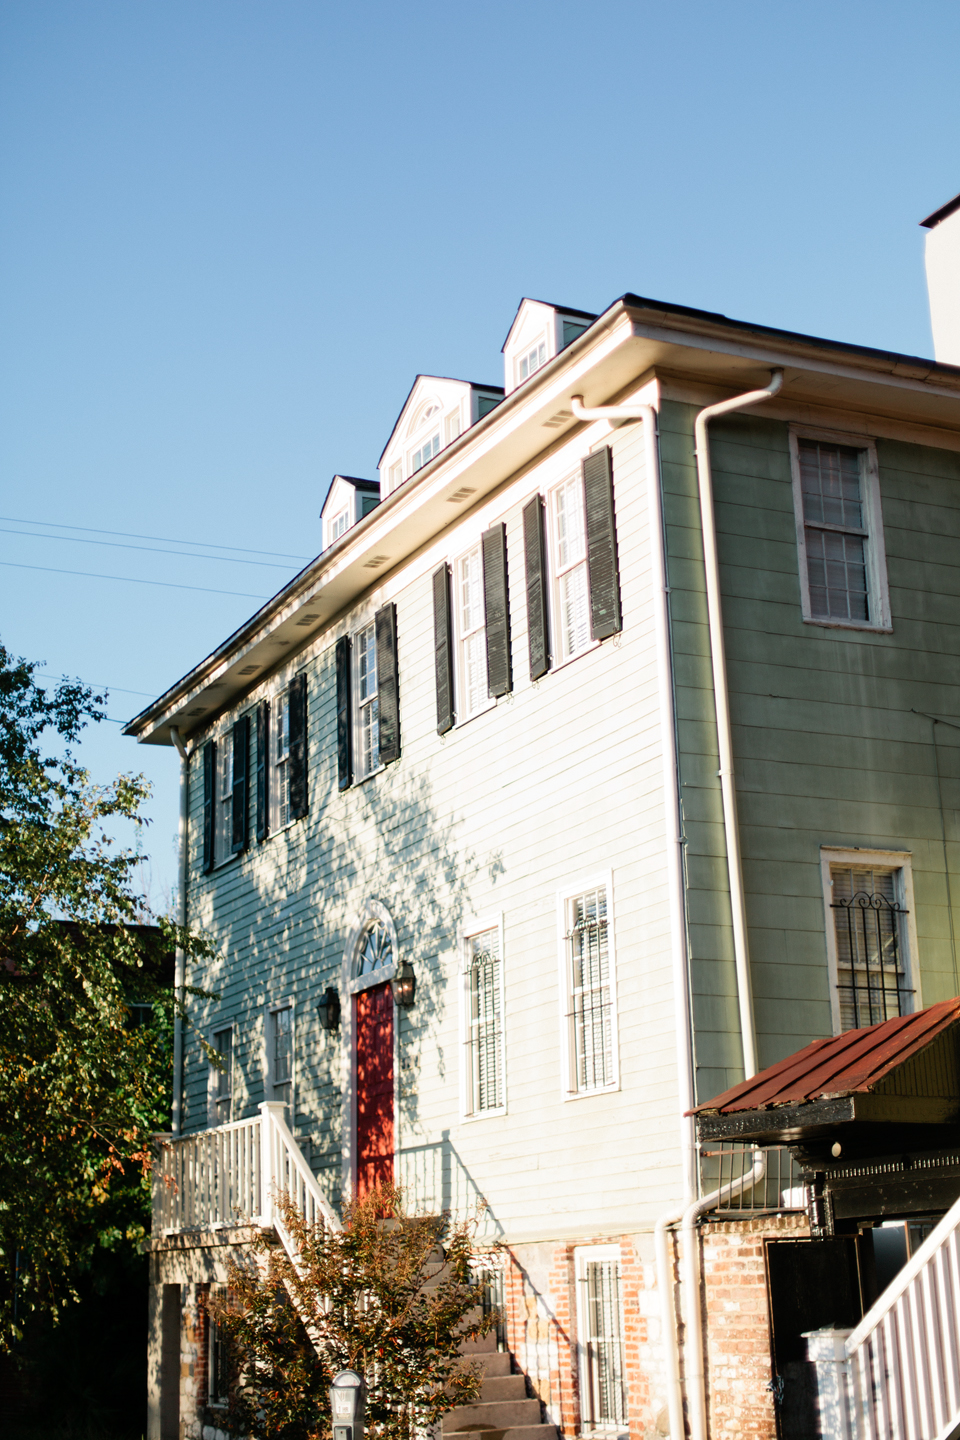 Picture of a coastal South Carolina house, three stories with dormers in Montage Palmetto Bluff.